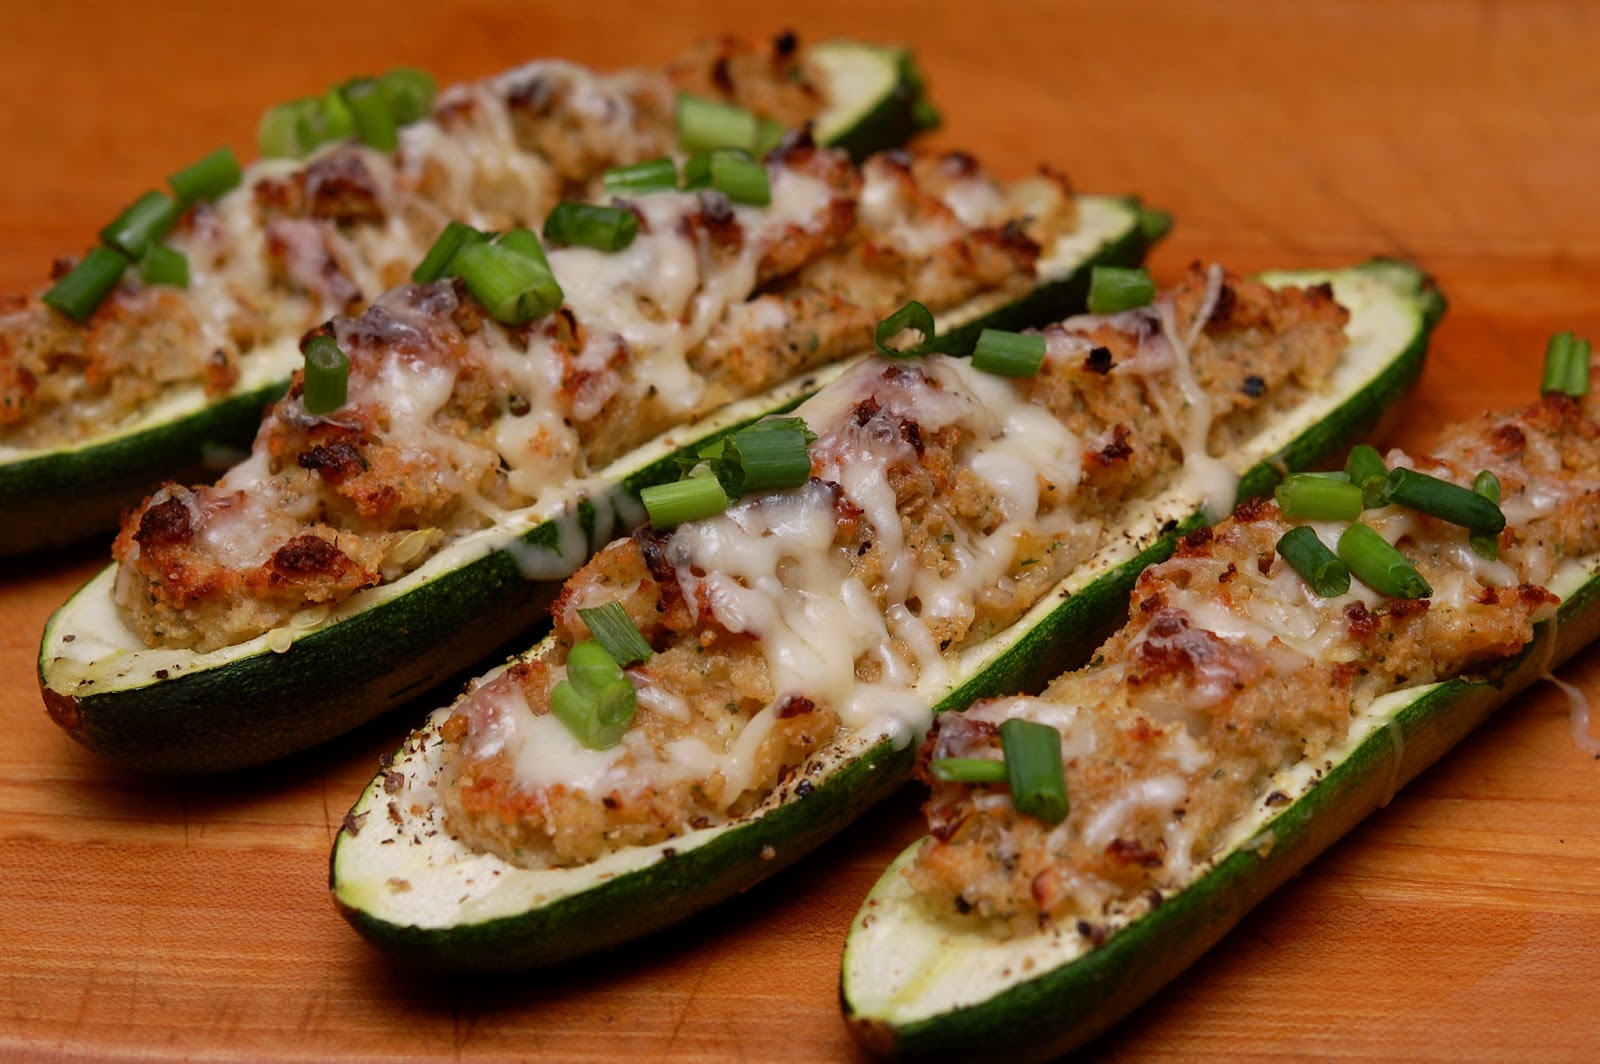 STUFFED ZUCCHINI BOATS-THE BEST SIDE DISH! - Hugs and Cookies XOXO